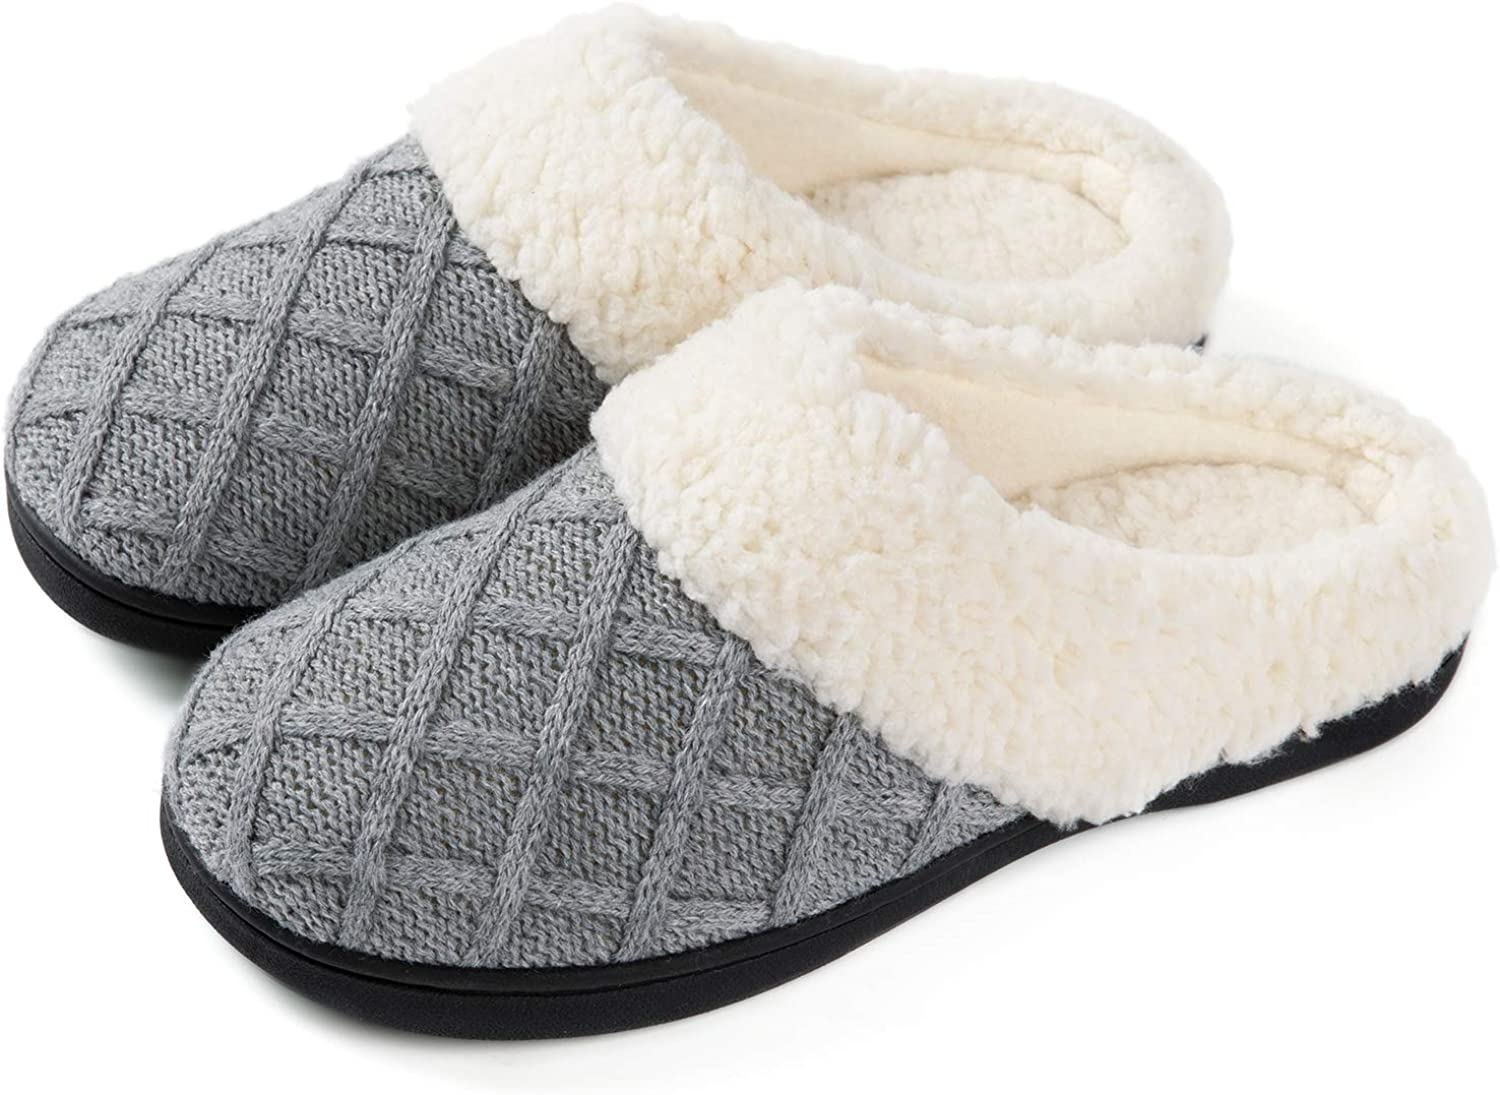 ULTRAIDEAS Women's Cozy Memory Foam Knit Slippers, Ladies' Mules House Shoes with Indoor Outdoor Rubber Sole